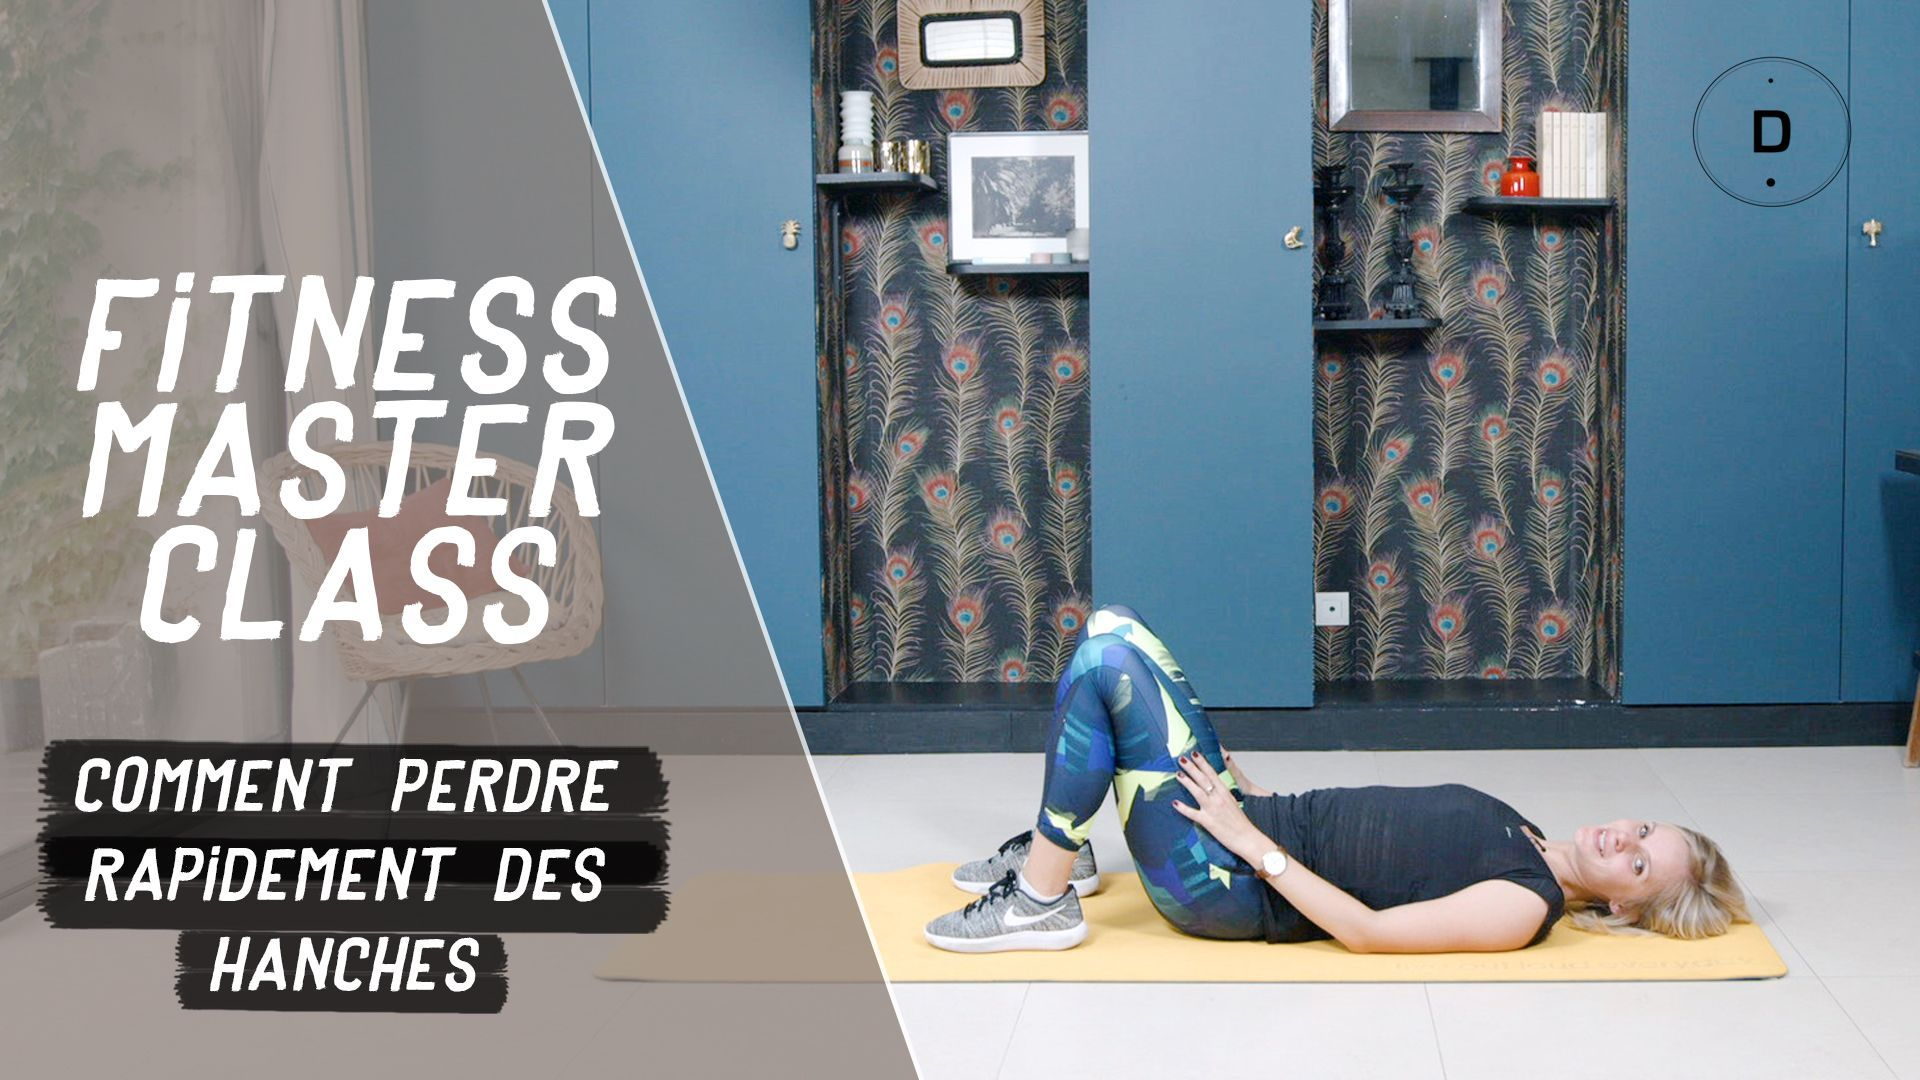 Comment perdre rapidement des hanches? (20 min) - Fitness Master Class